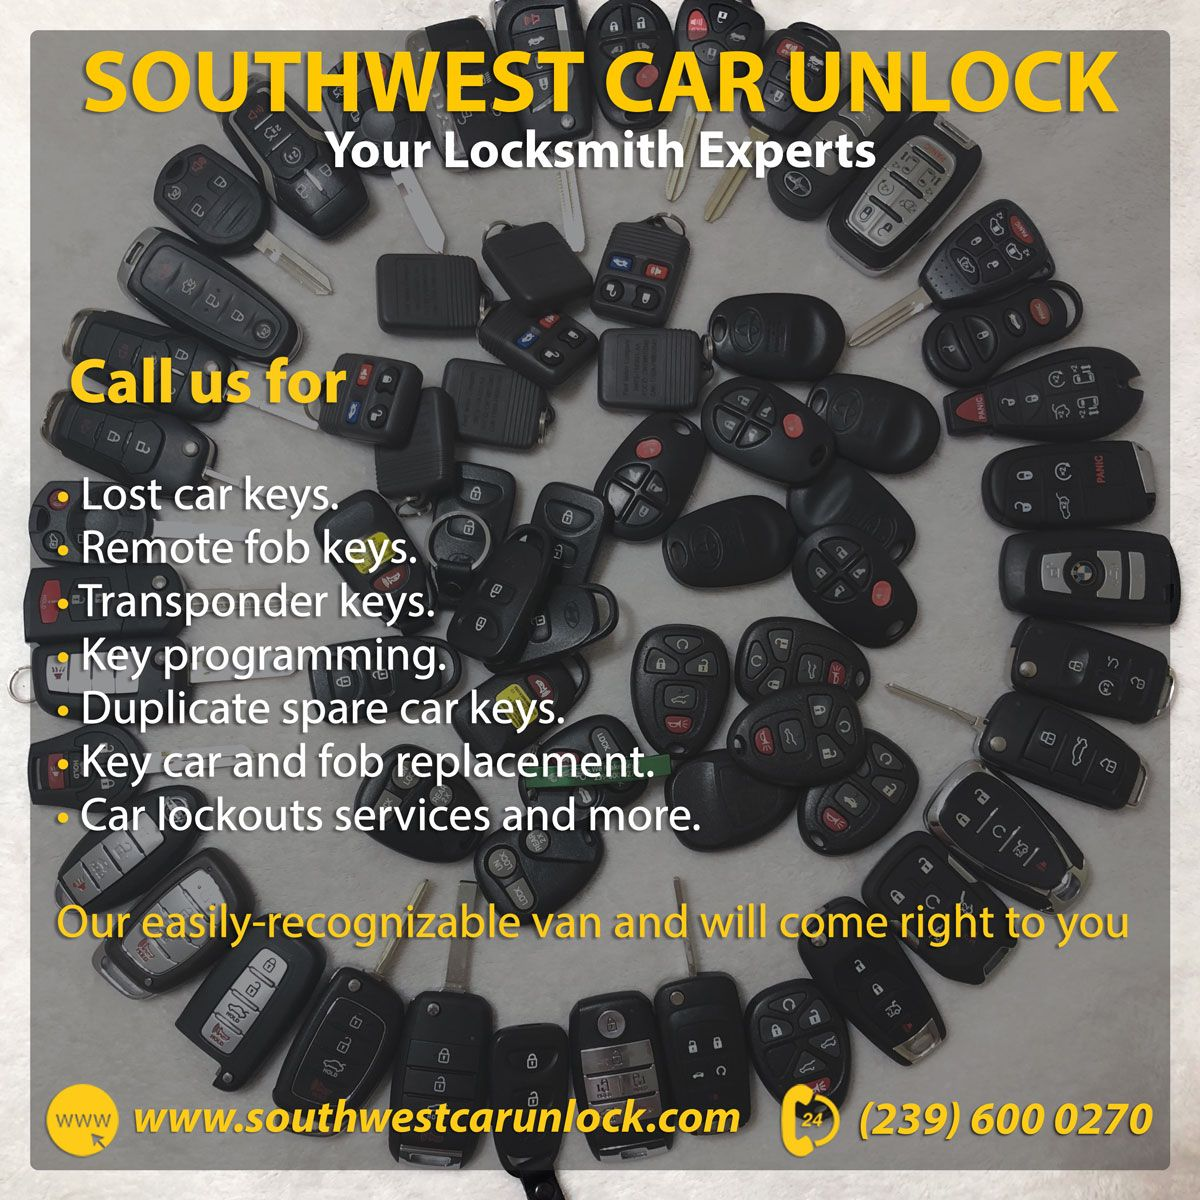 Call us for lost car keys, key car and fob replacement